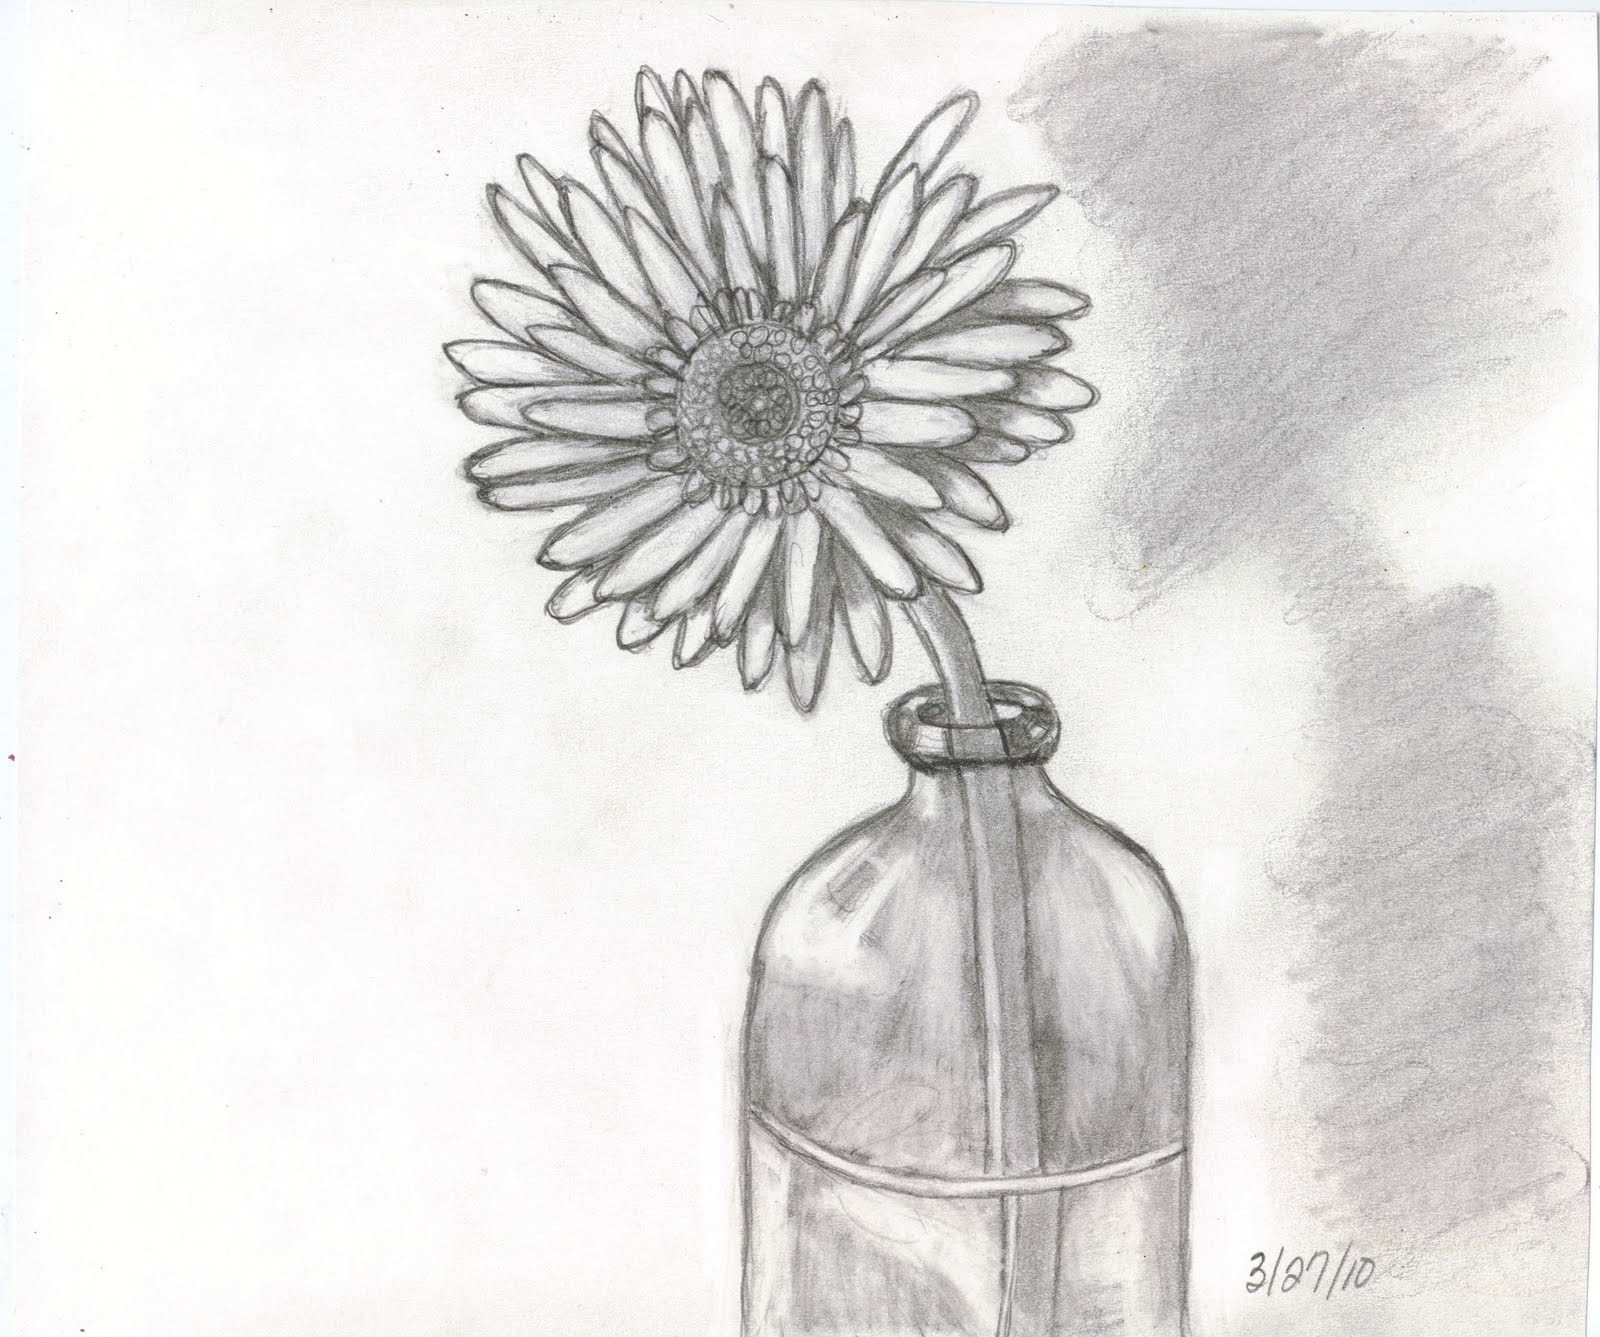 Sketches And Things: Flower In A Glass Bottle -- Pencil